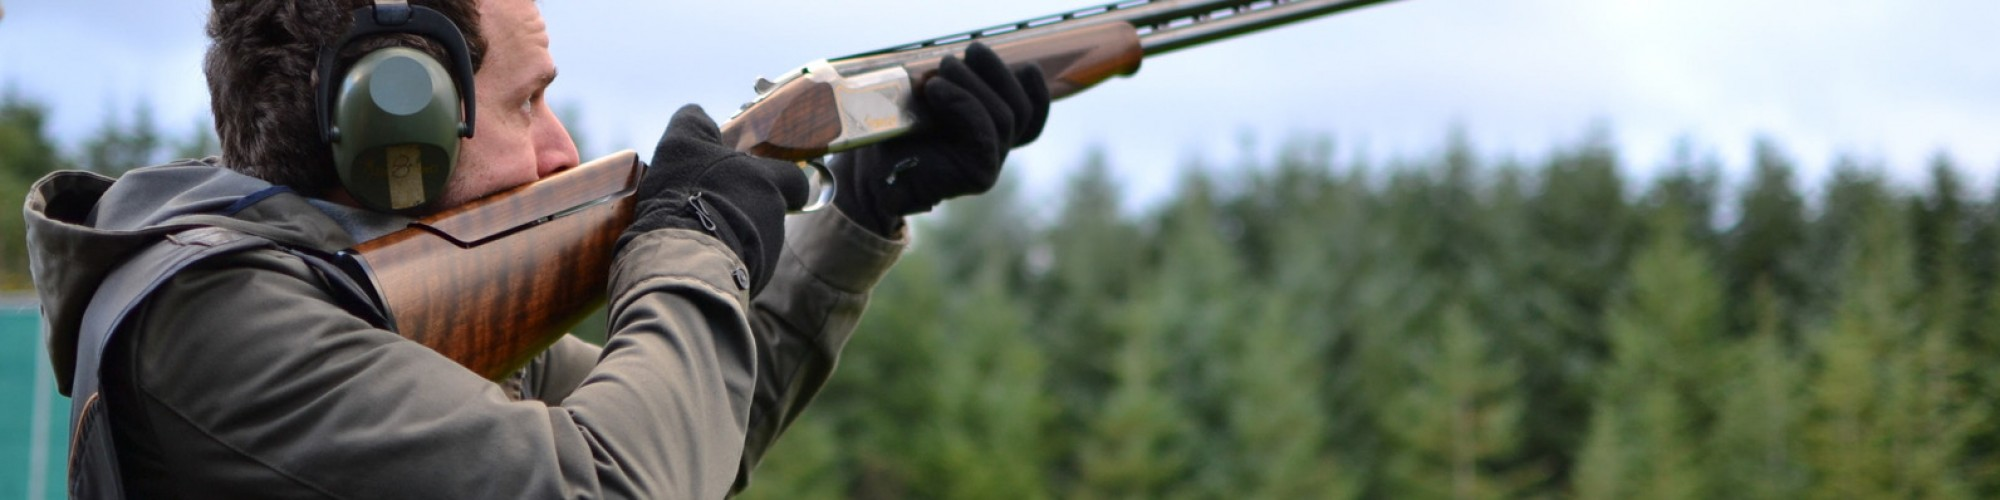 Canva man shooting shotguns at clay pigeon outdoors